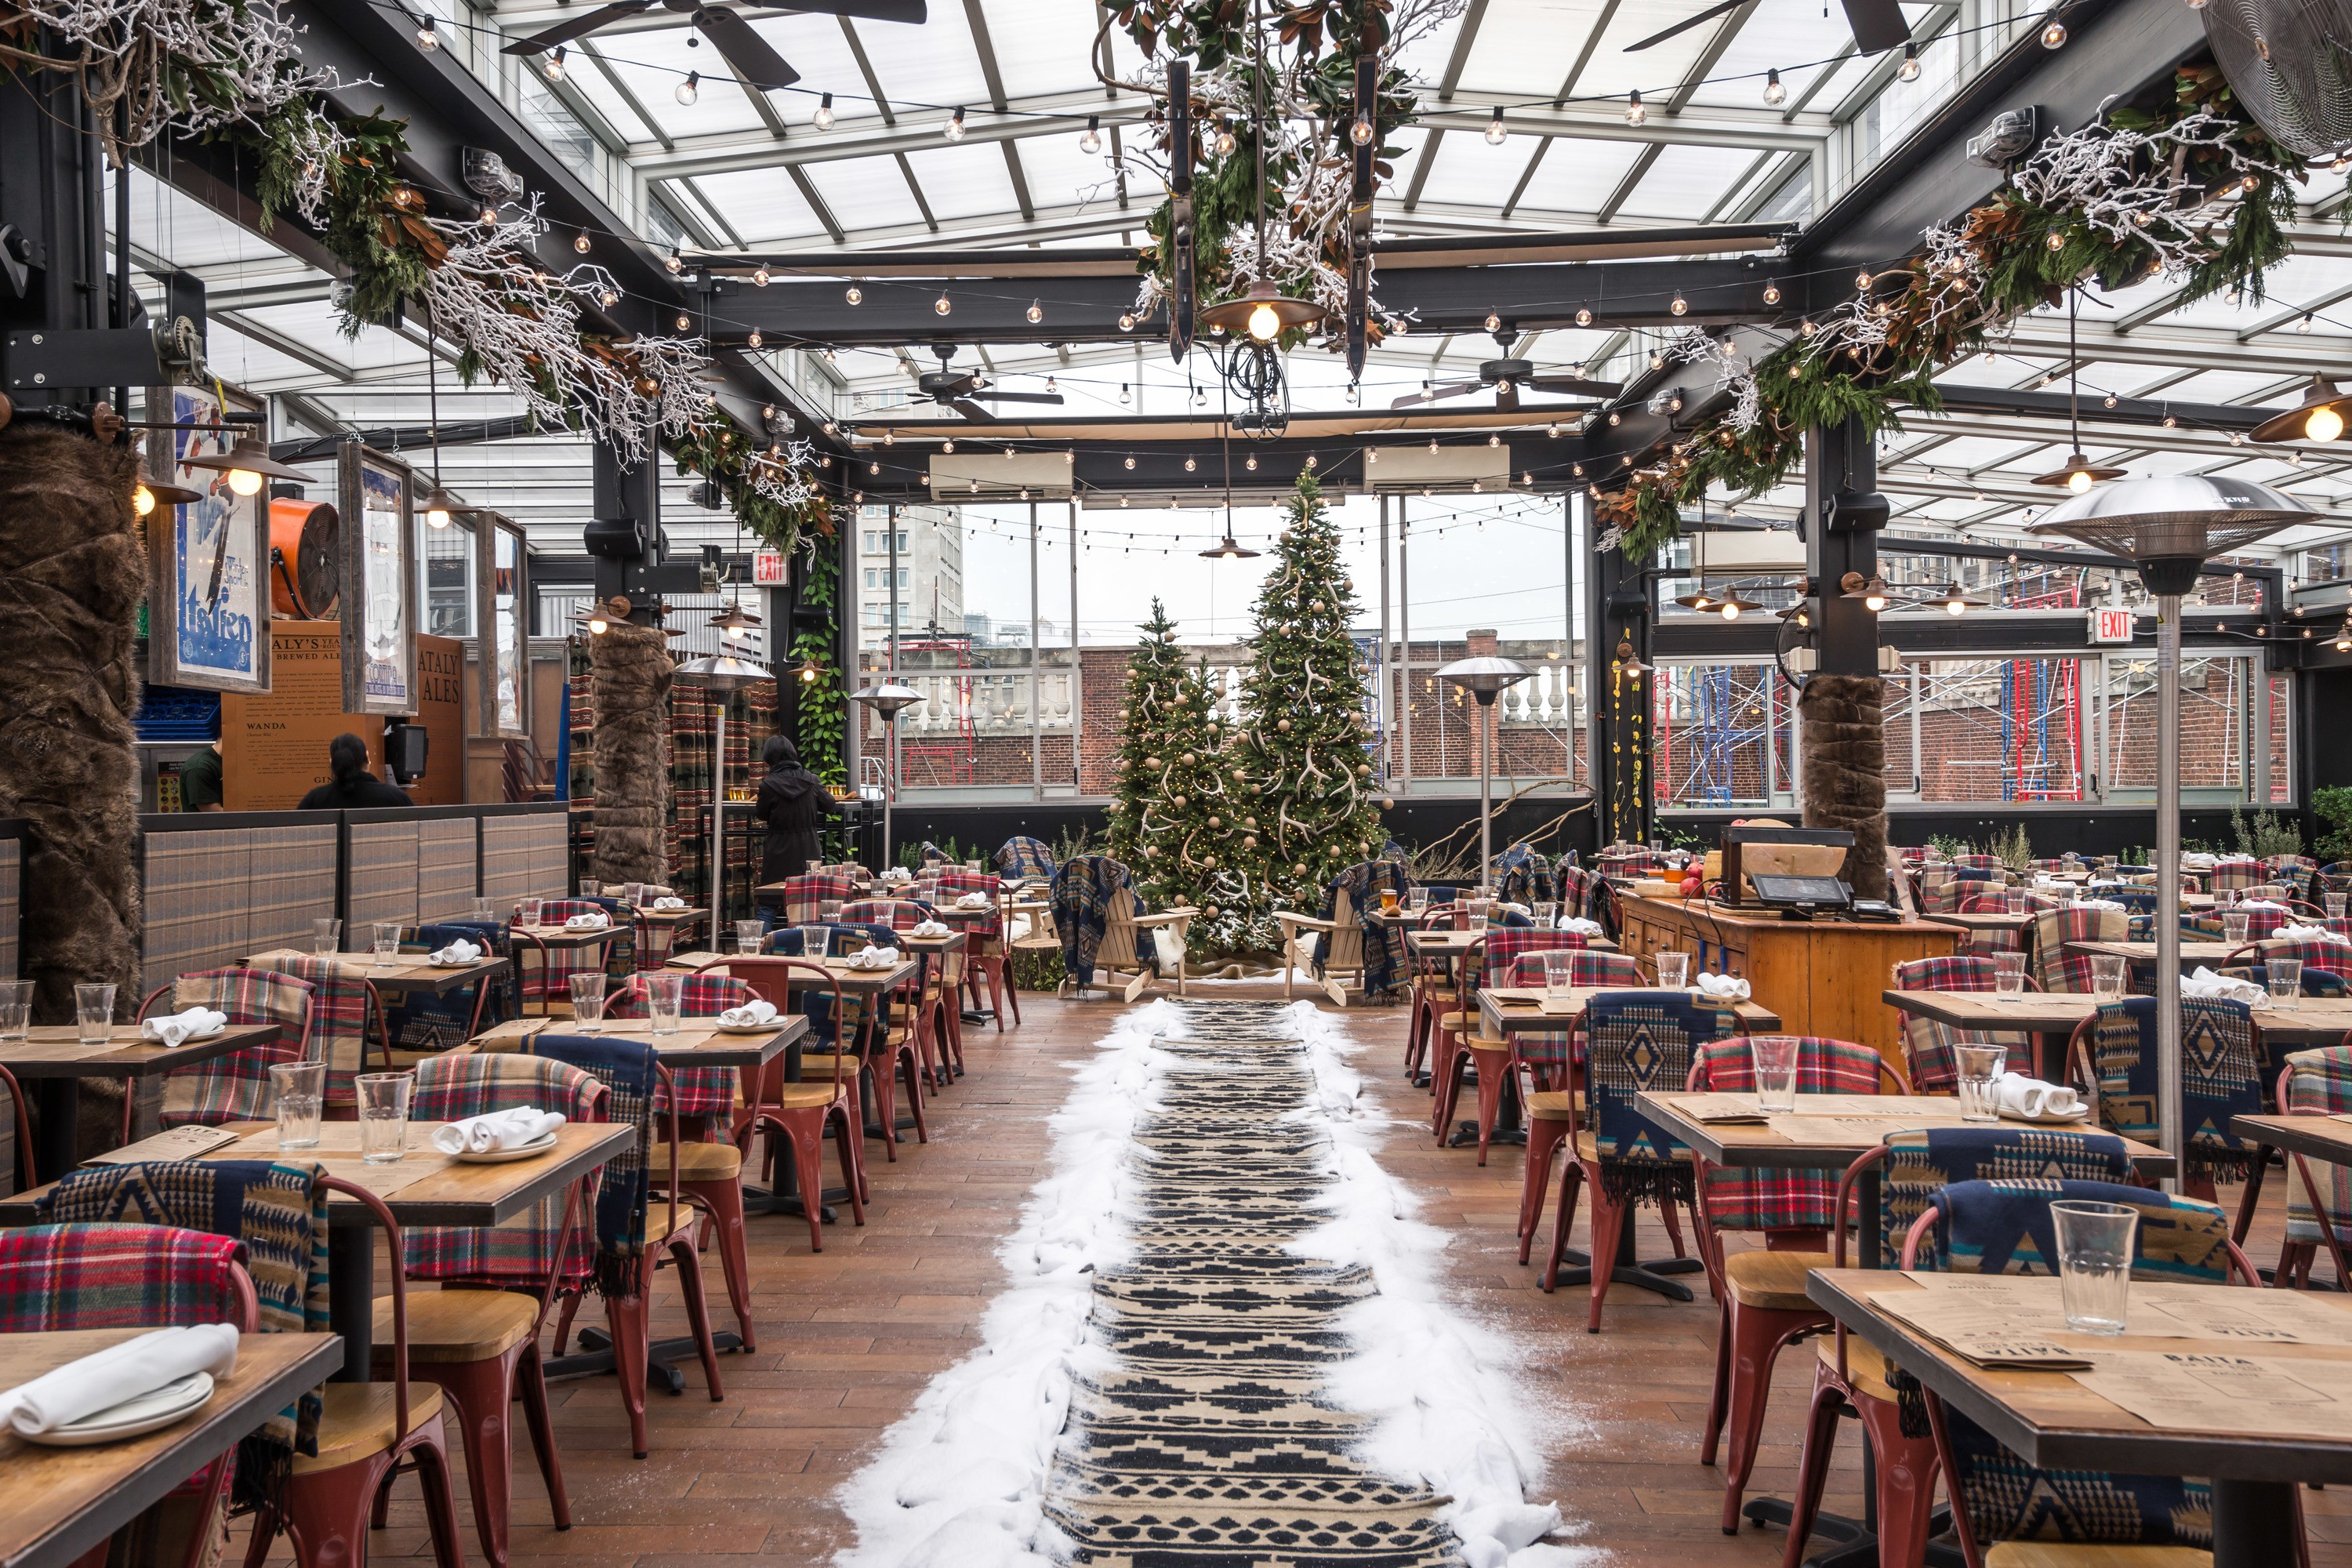 Eataly Nyc Rooftop